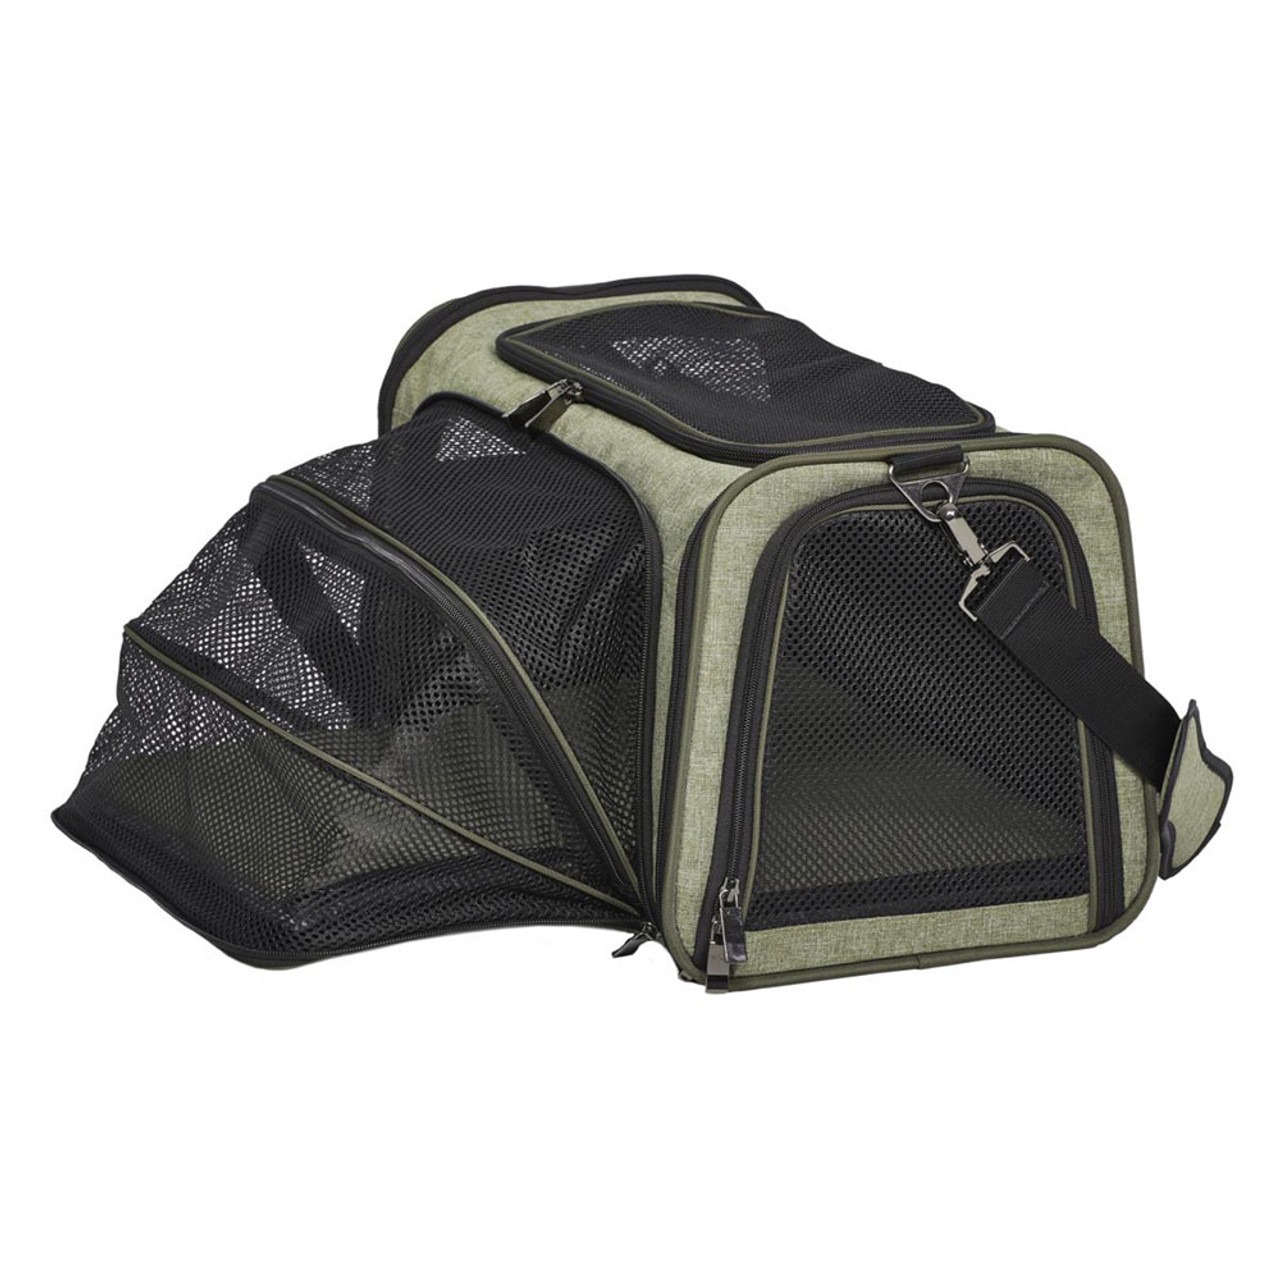 MidWest Duffy Expandable Green Pet Carrier